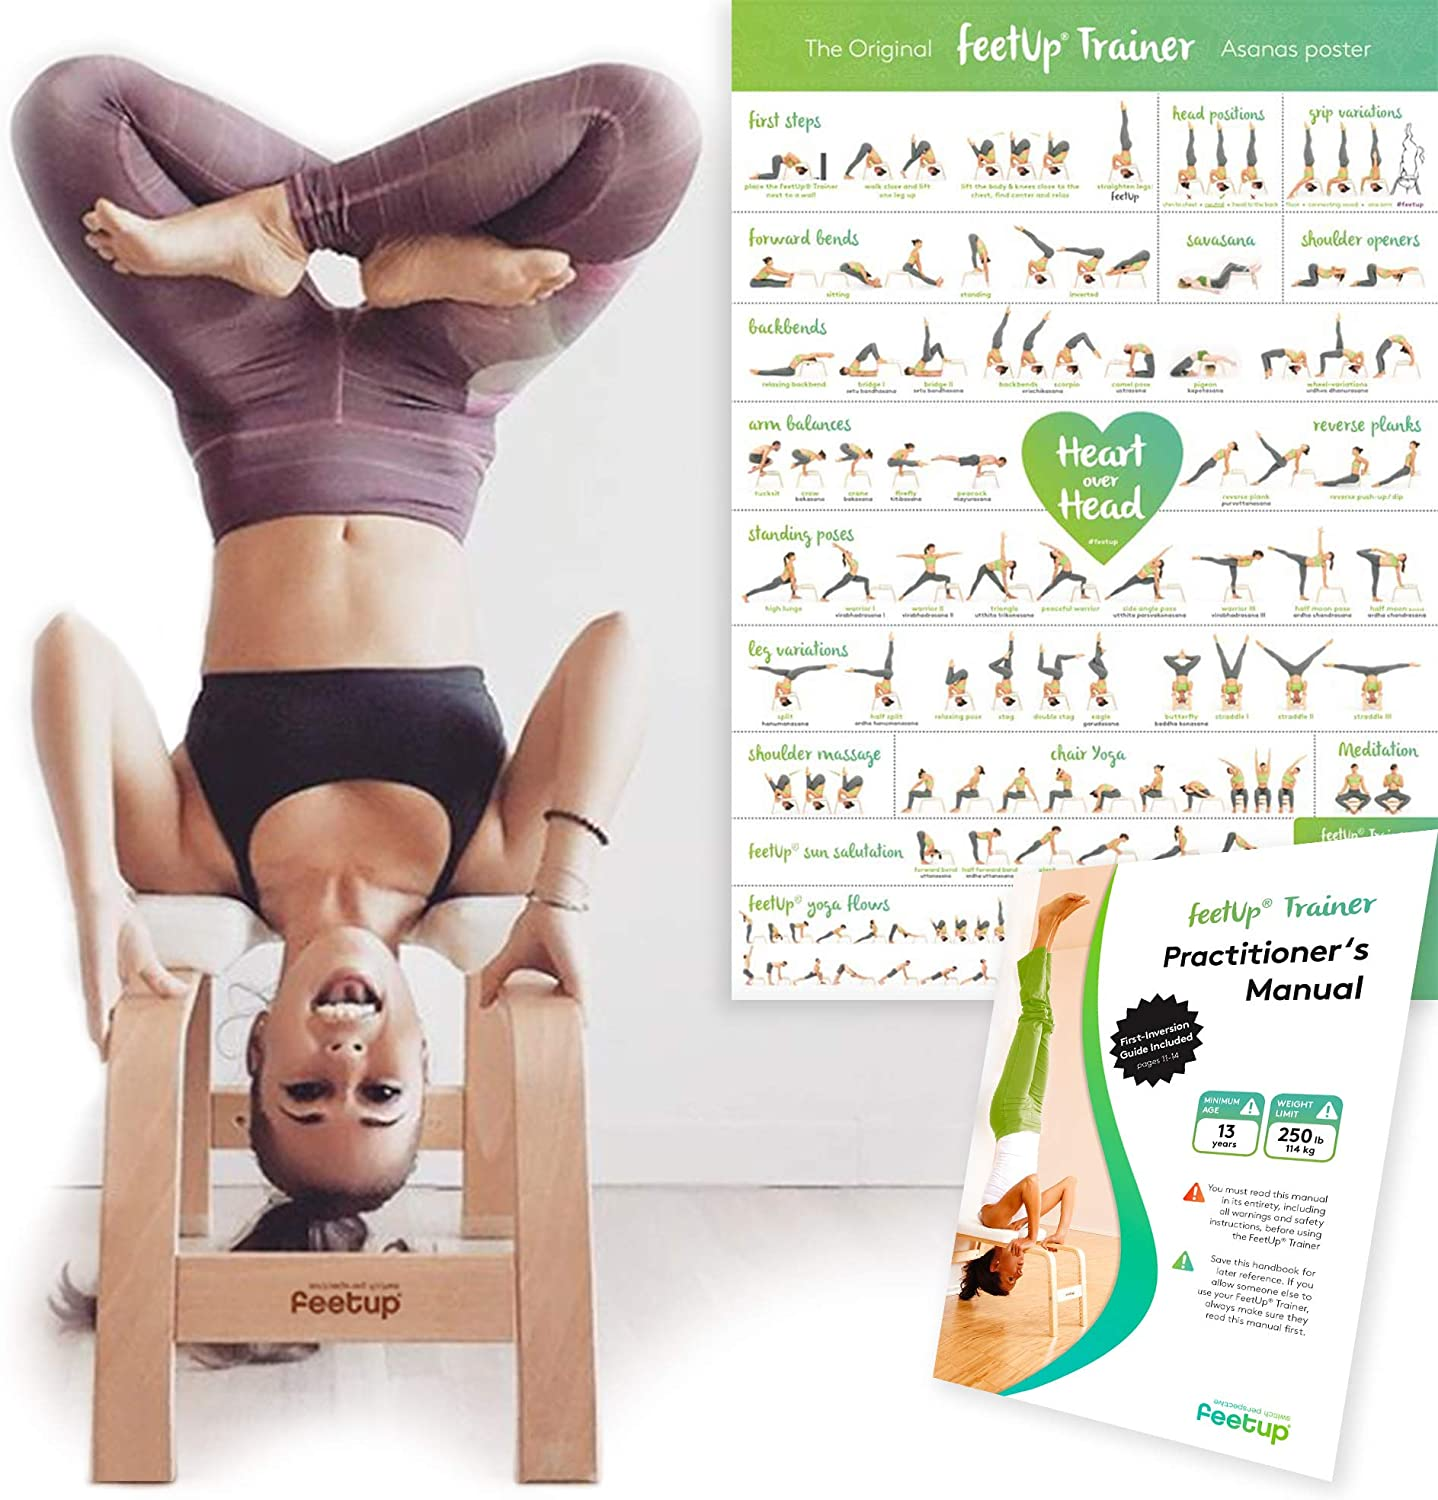 The Original Turn Your Yoga Upside Down! Get Fit - Invert Safely /& Easily Relax FeetUp/Trainer